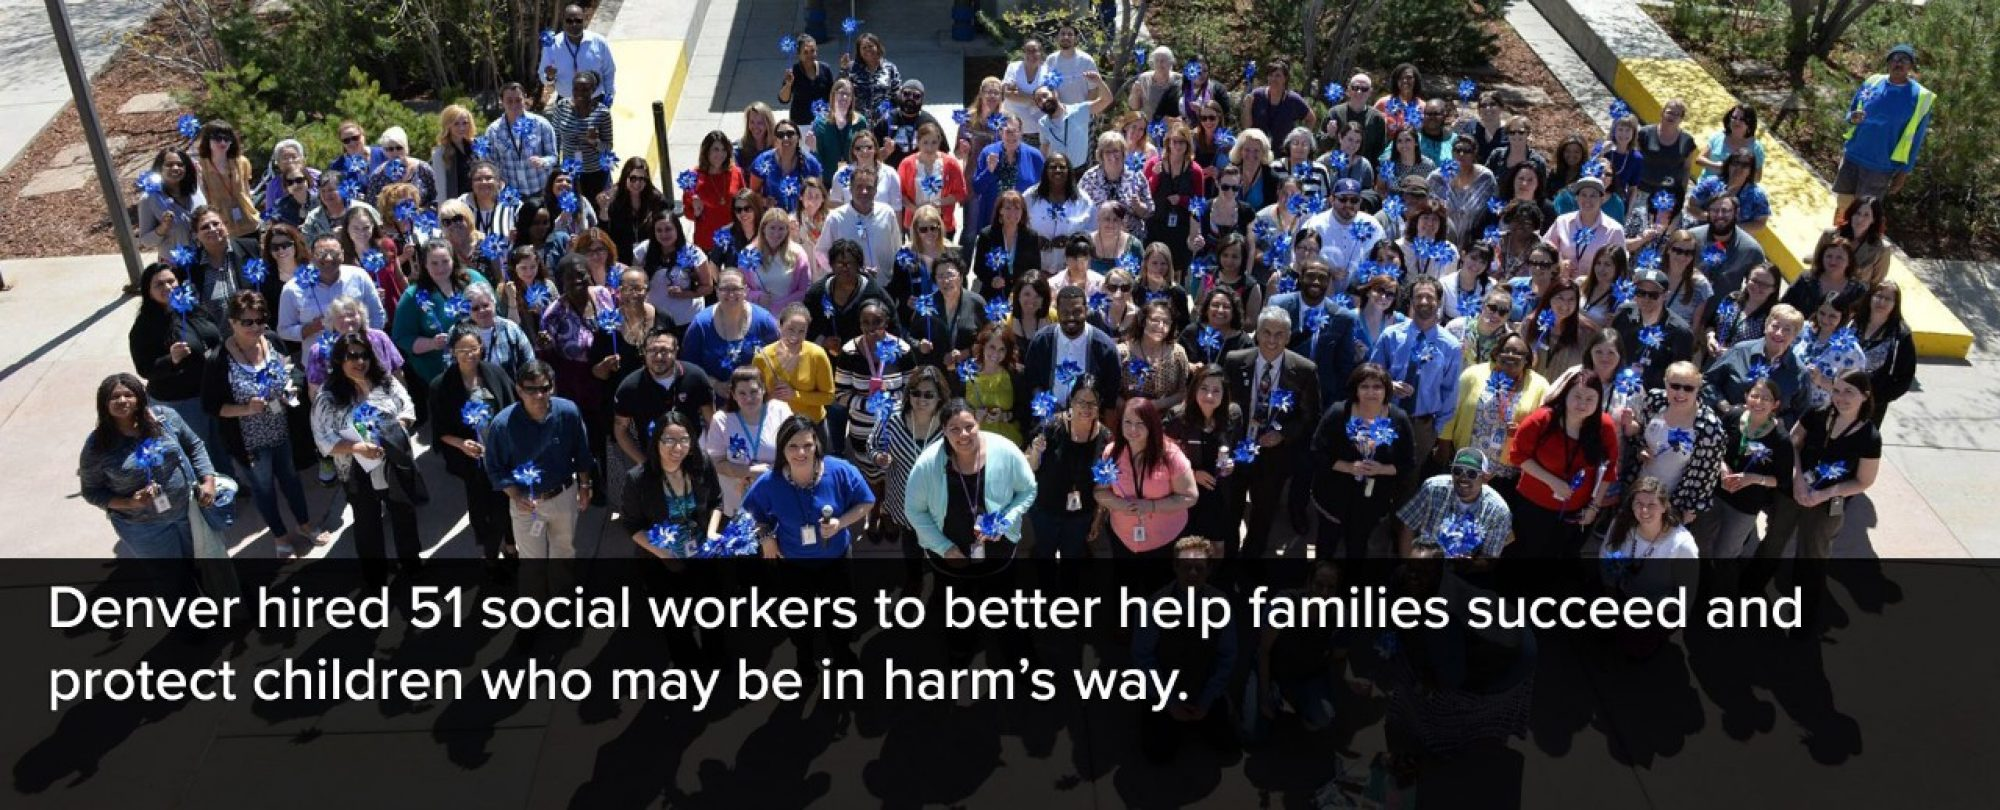 Photo of Denver human Services staff. Denver hired 51 social workers to better help families succeed and protect children who may be in harm's way.